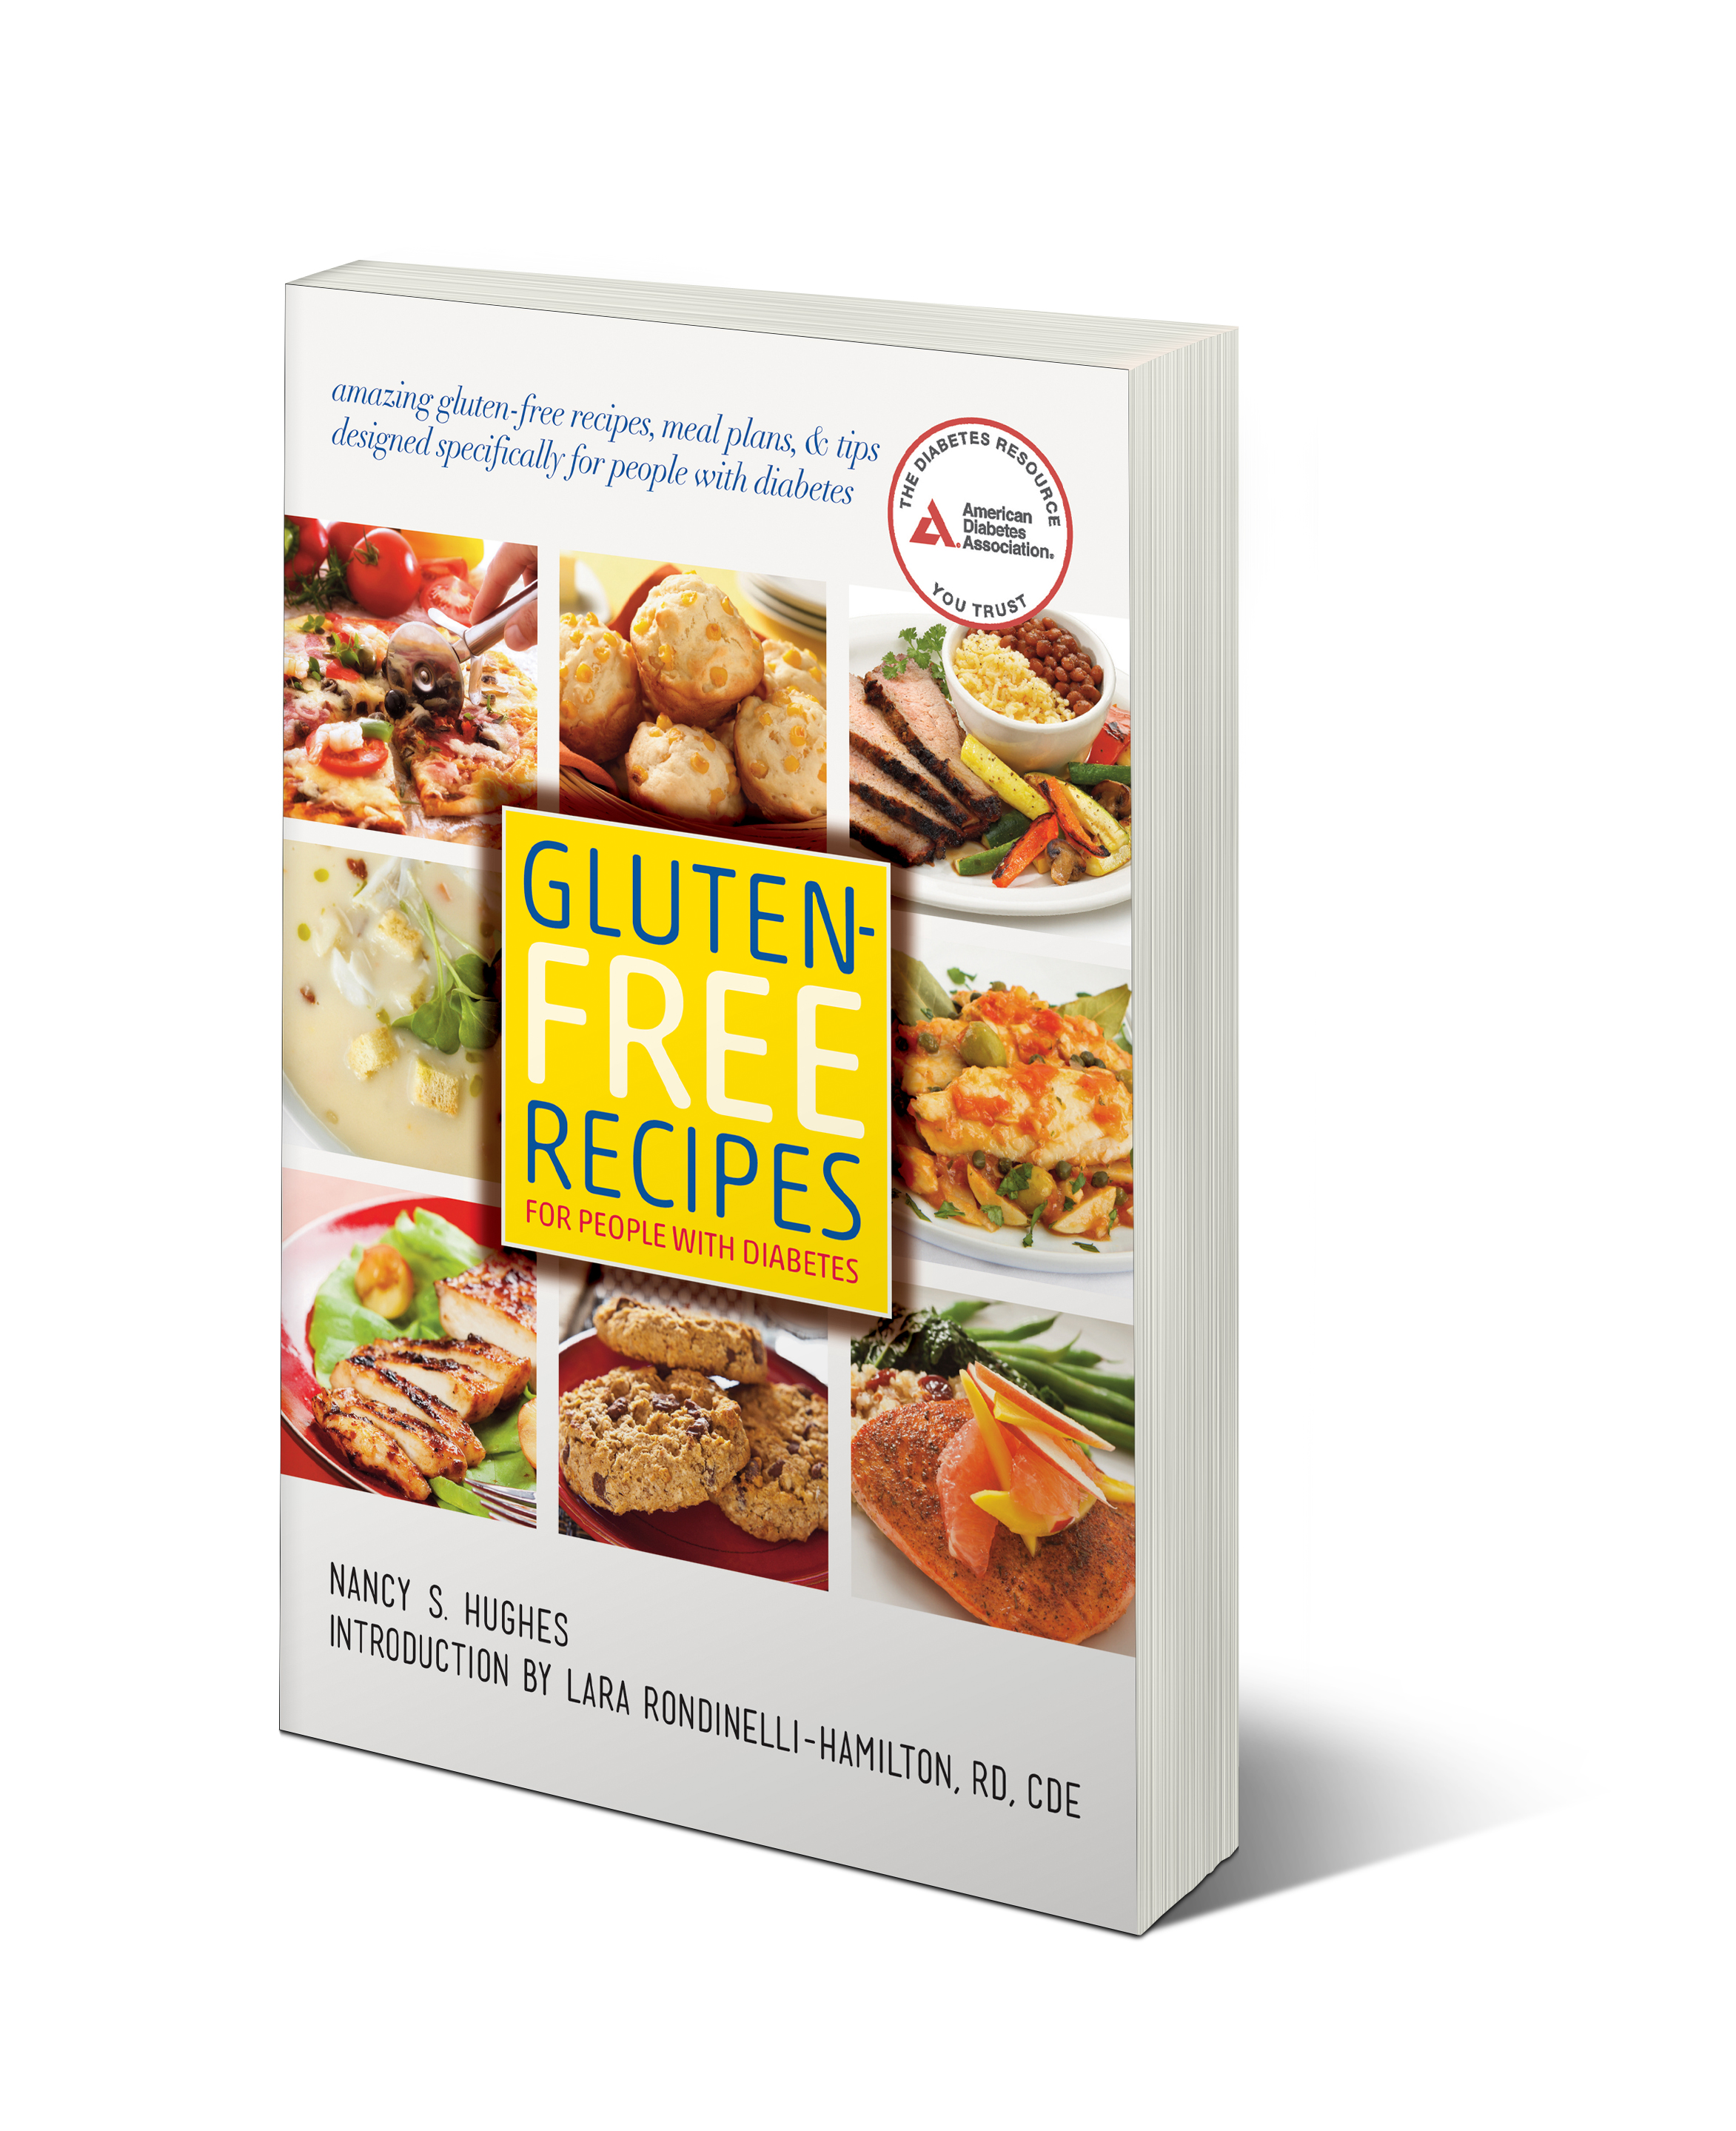 Gluten-Free Recipes for People with Diabetes Cookbook